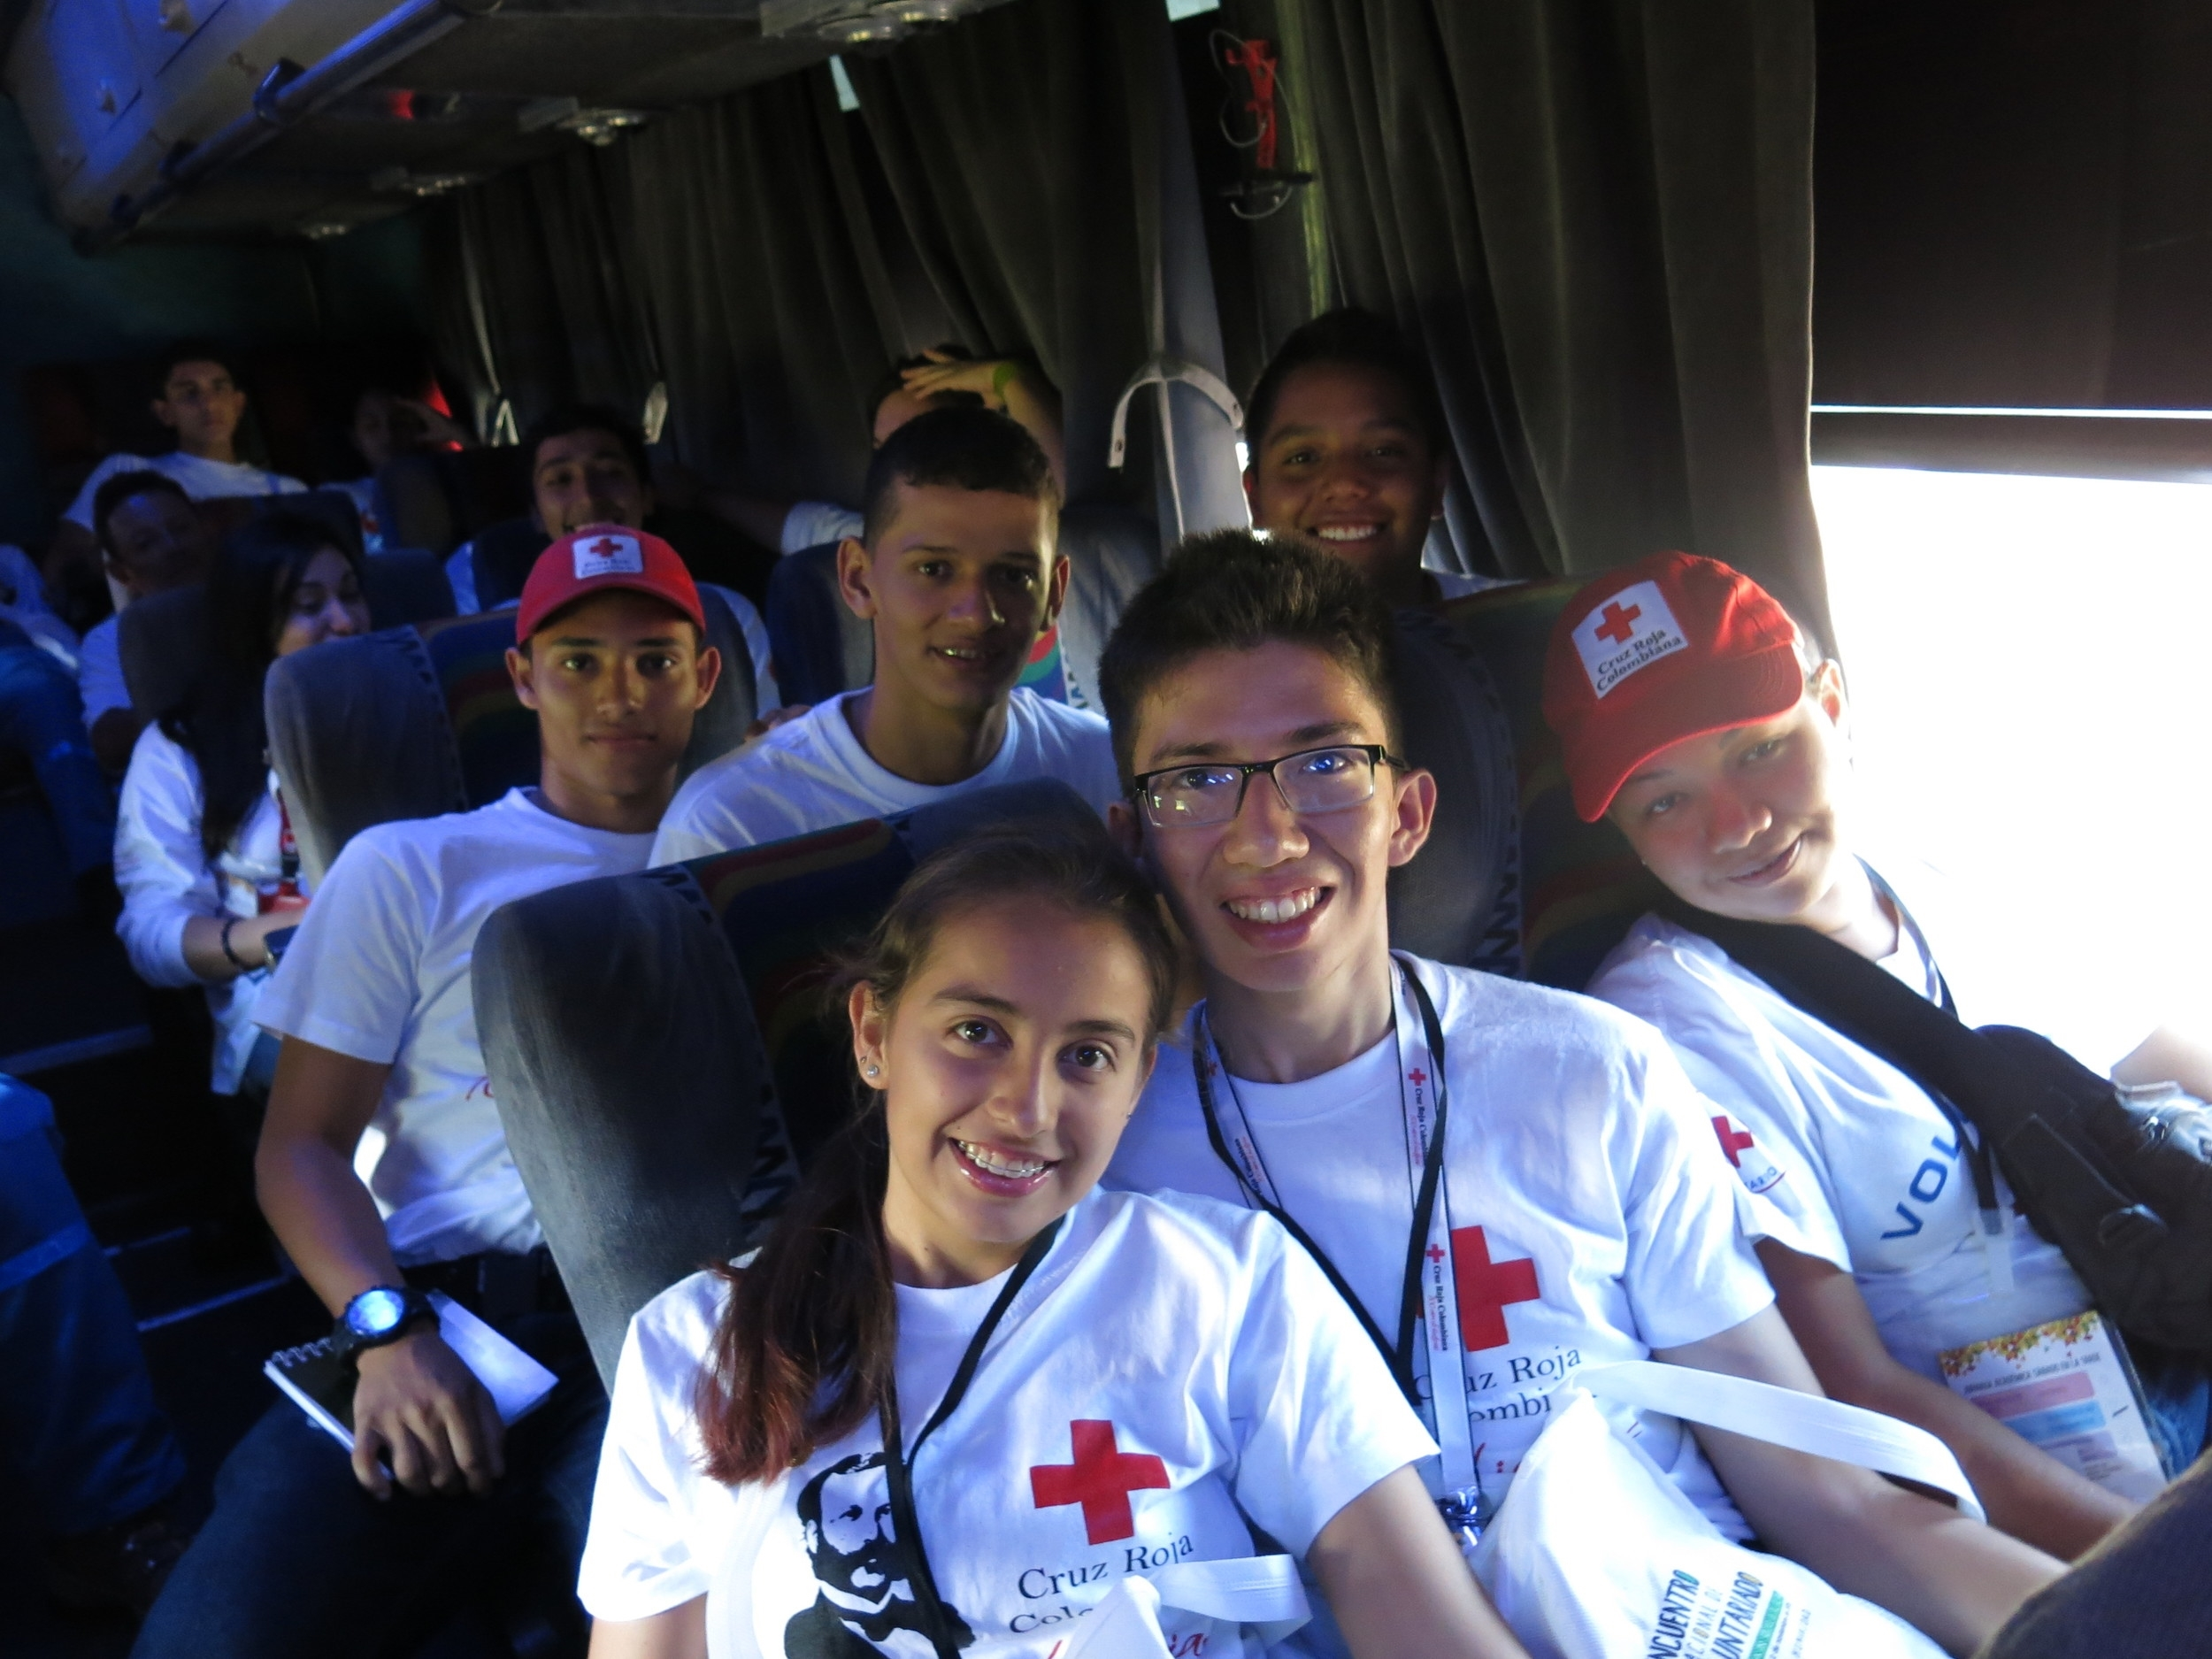 Volunteers on the bus on their way to their first academic day. En camino por el primero día academico